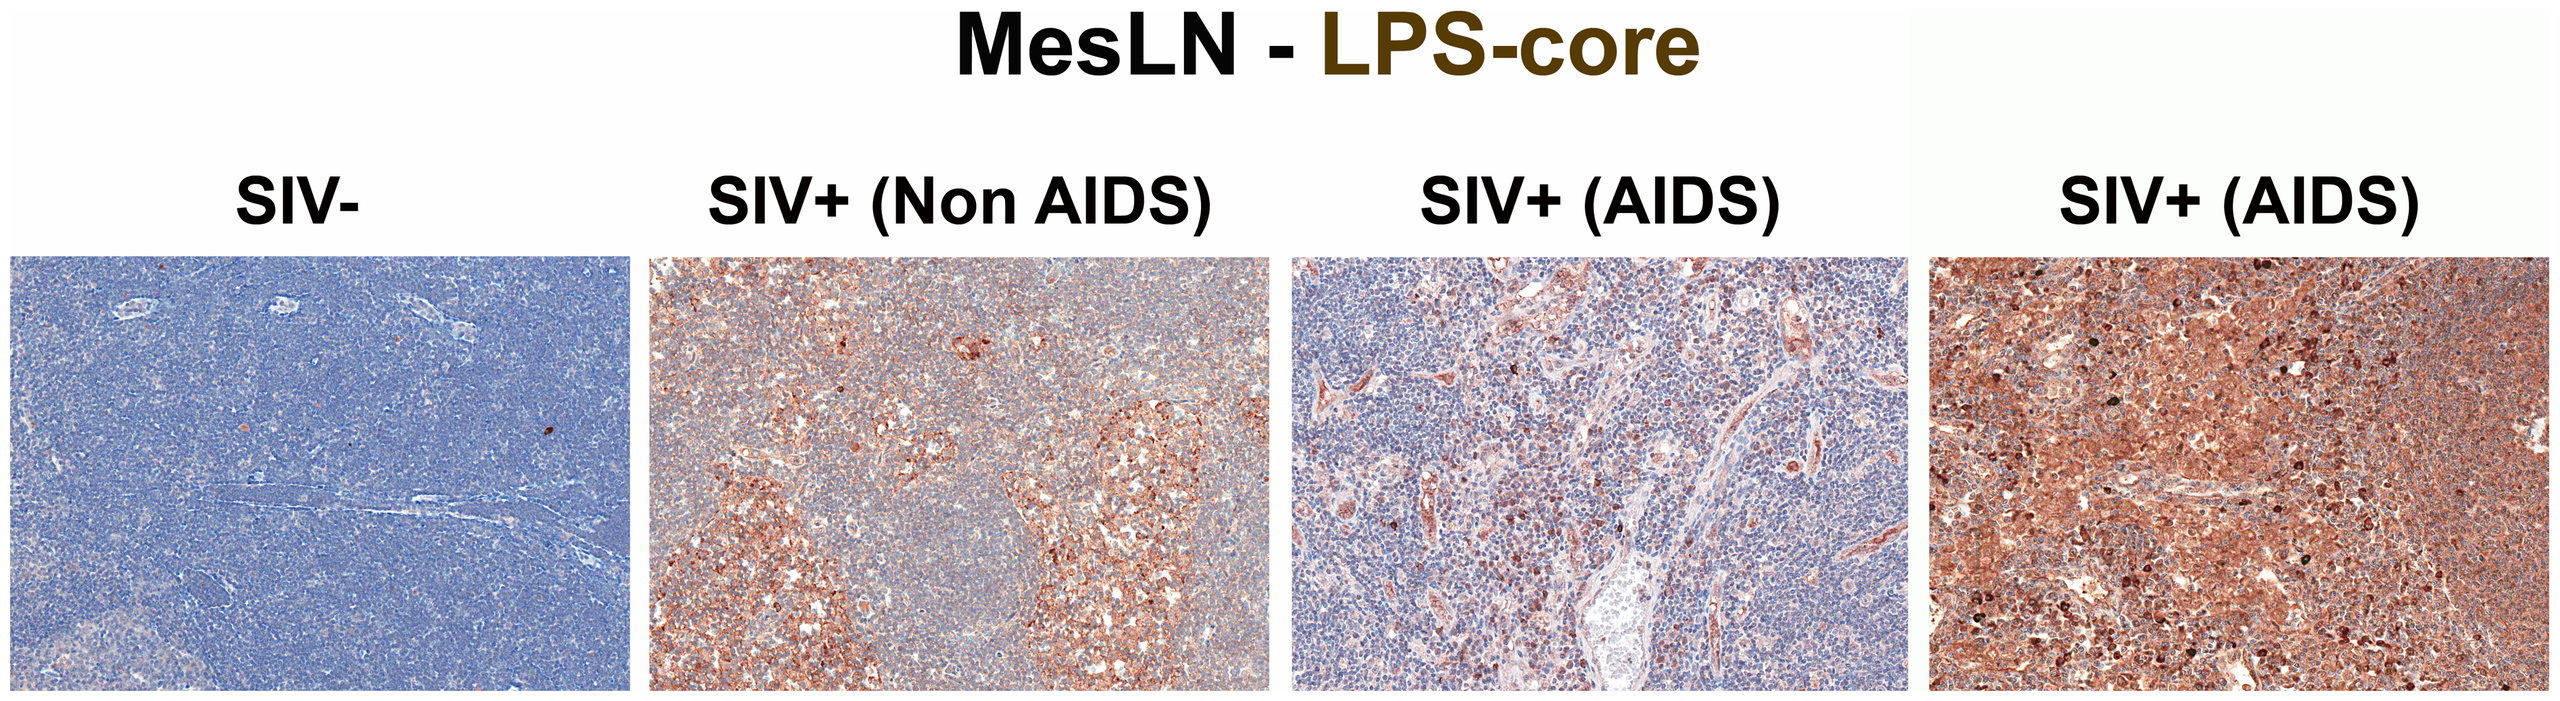 Identification of microbial translocation in gut draining MesLN of chronically SIV<sup>+</sup> RMs.